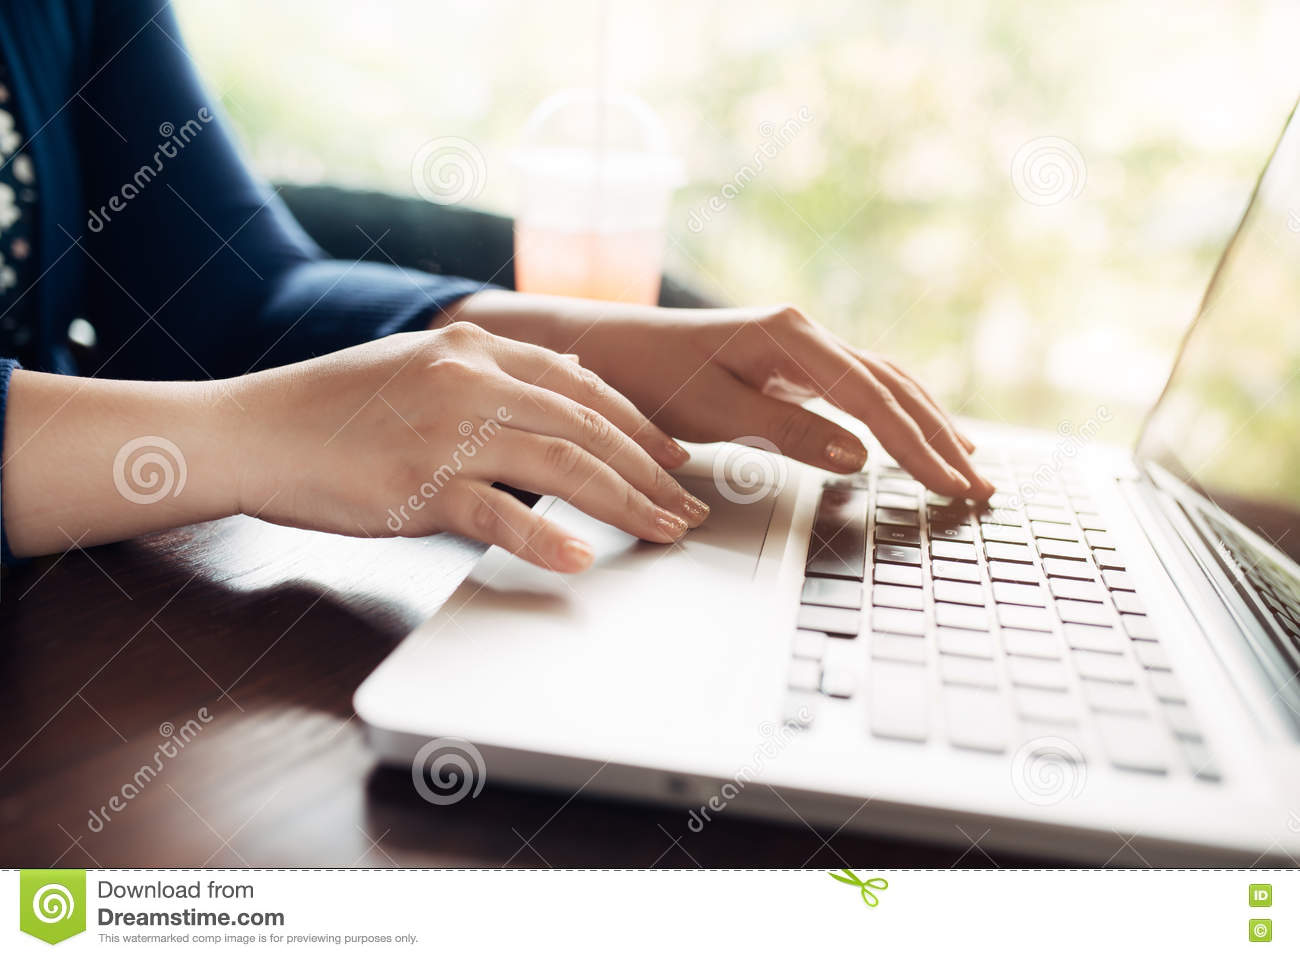 woman hands working with a laptop in a coffee shop stock image image of breakfast generic. Black Bedroom Furniture Sets. Home Design Ideas